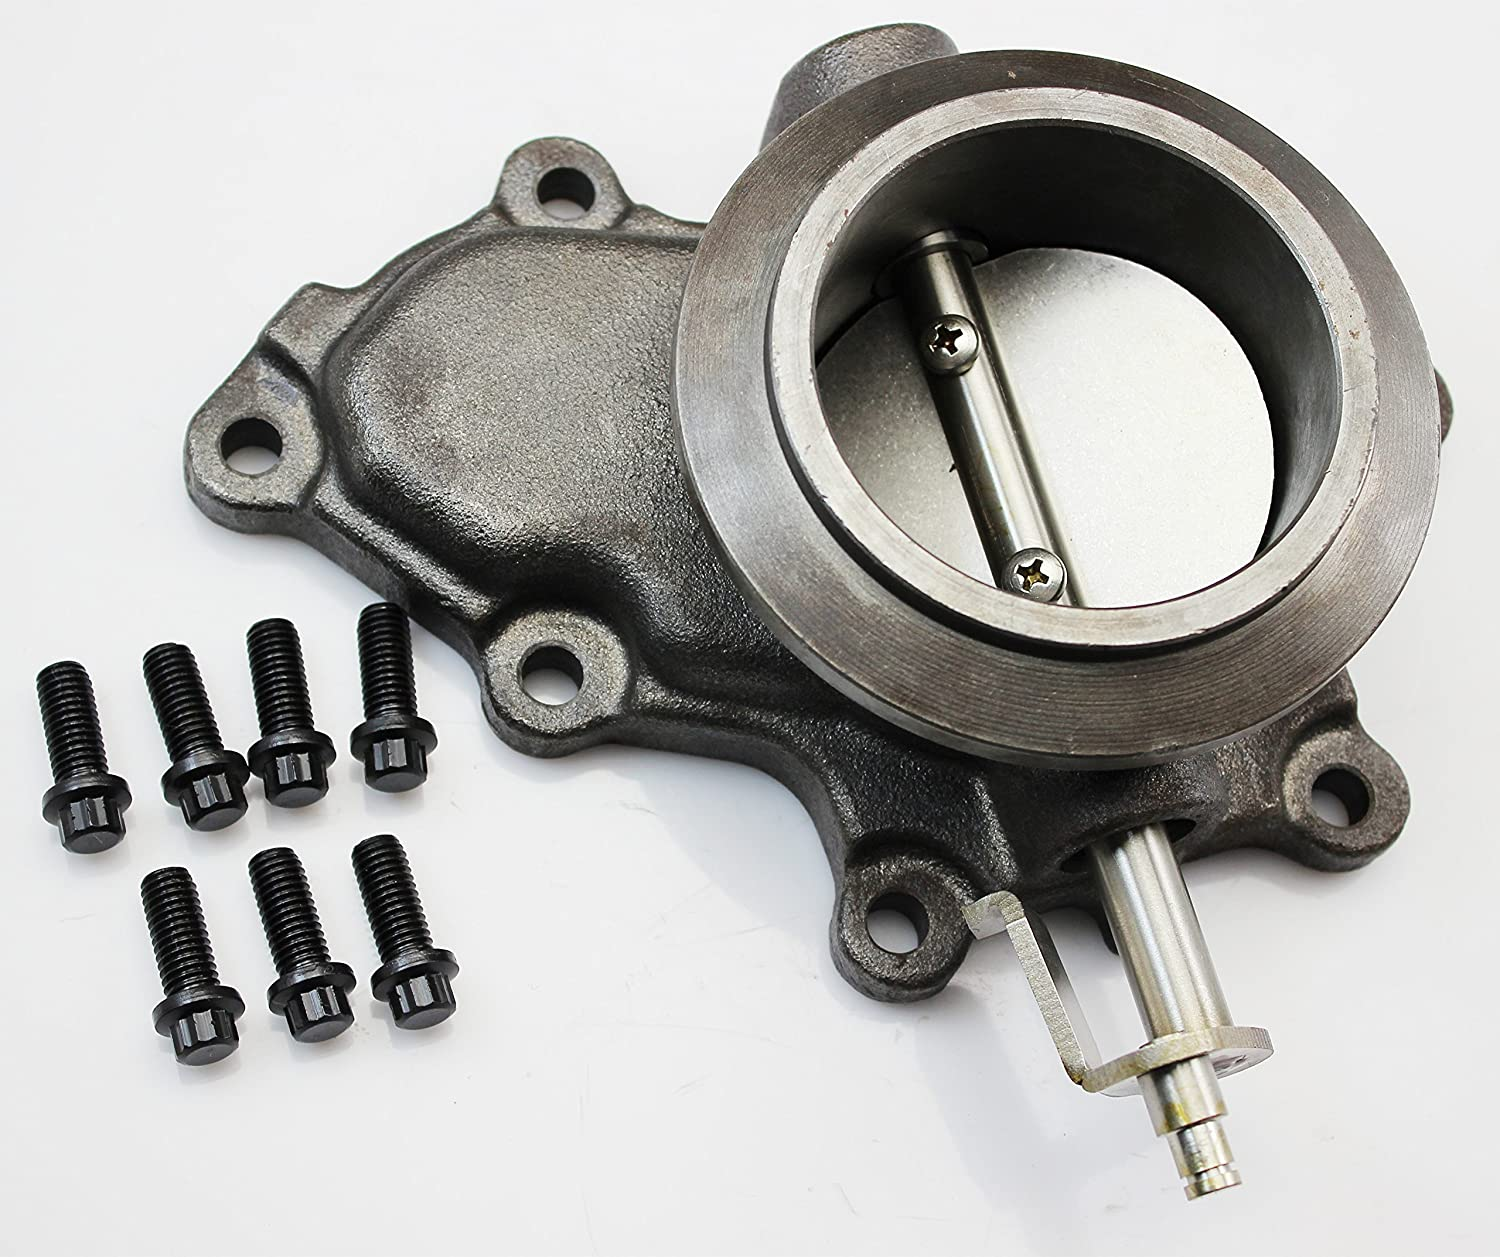 1999-2003 Ford 7.3L GTP38 Turbo Charger Waste-gate Butterfly Supercell Turbos